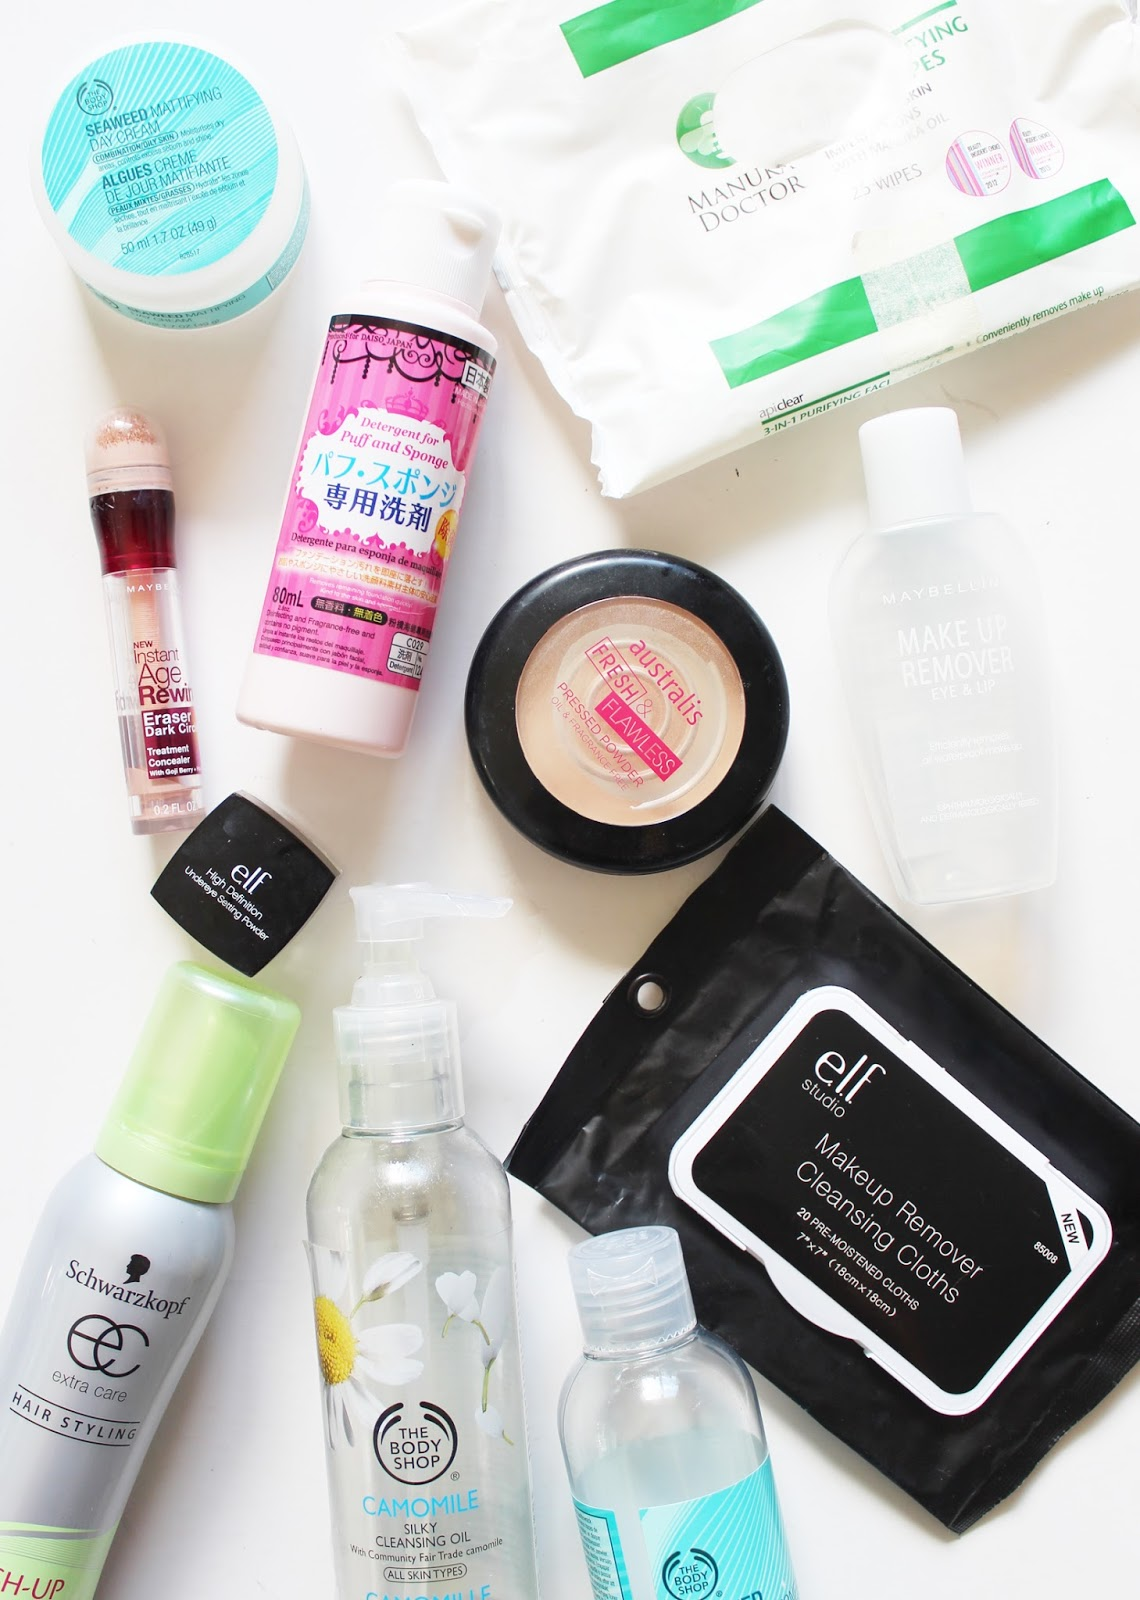 EMPTIES | October '15 - The Body Shop, Manuka Doctor, elf, Australis, Daiso, Maybelline, Schwarzkopf - CassandraMyee